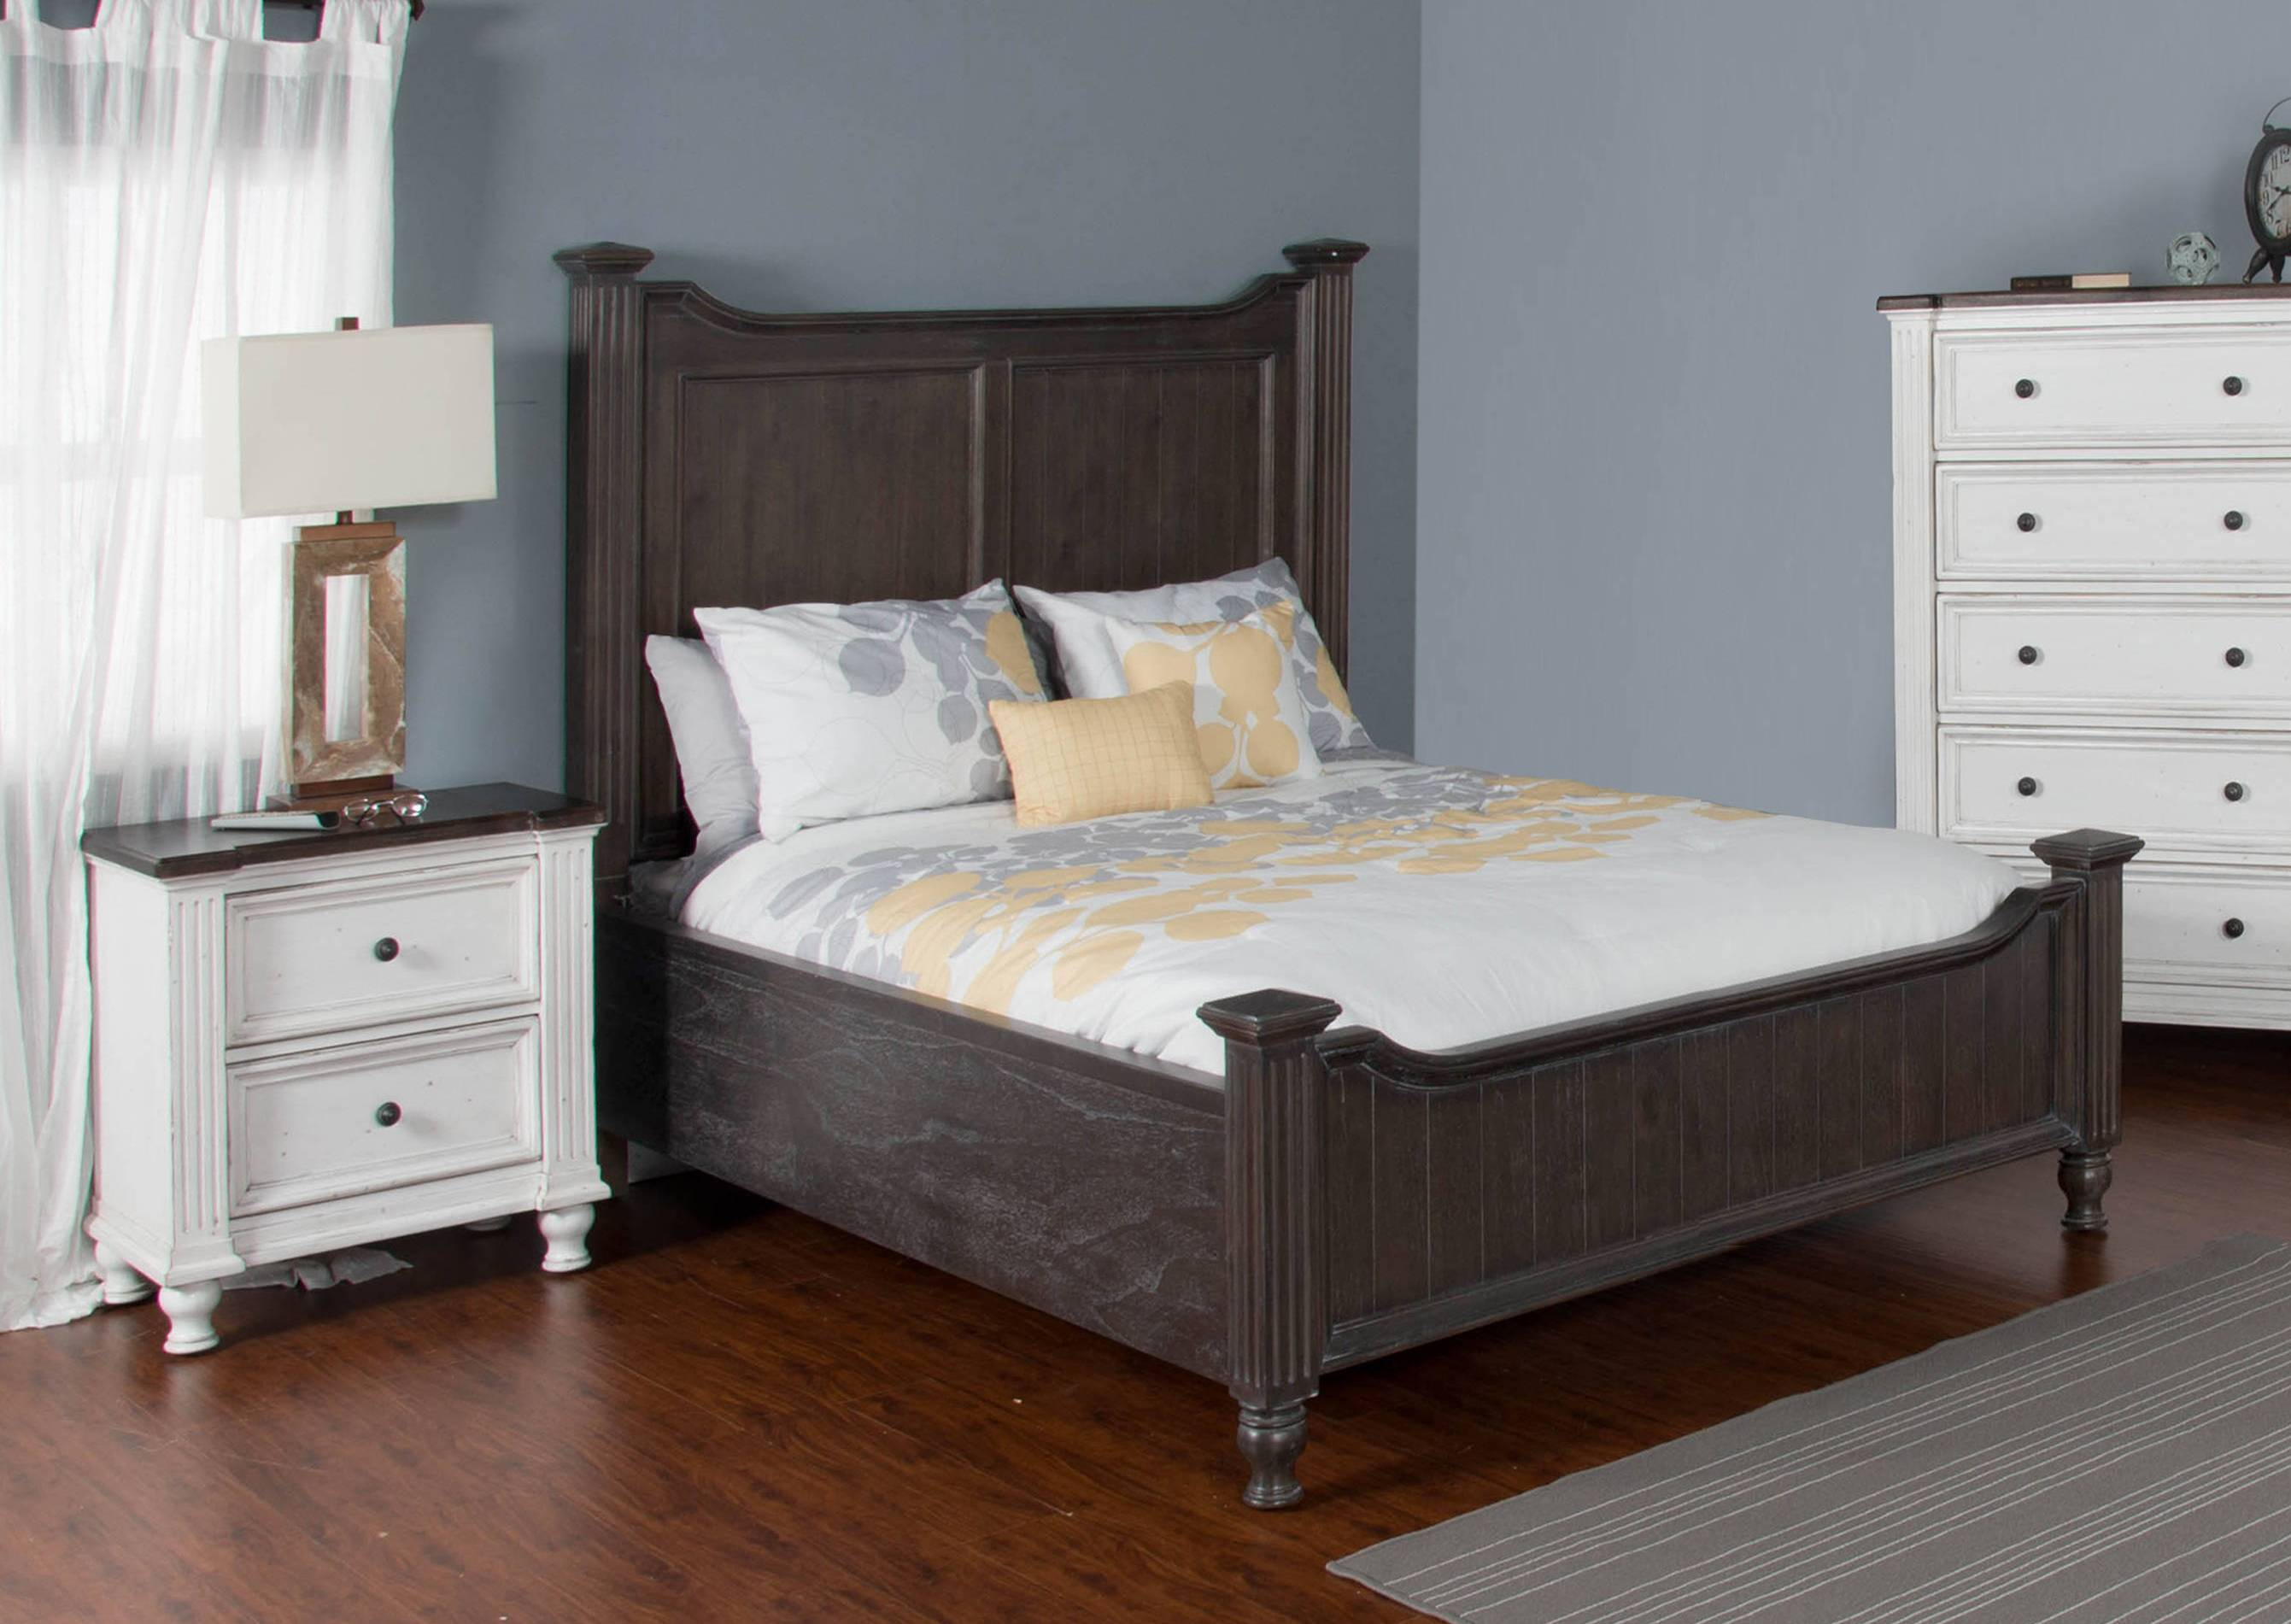 Sunny Designs Carriage House Off White Dark Brown 2pc Bedroom Set with  Queen Bed